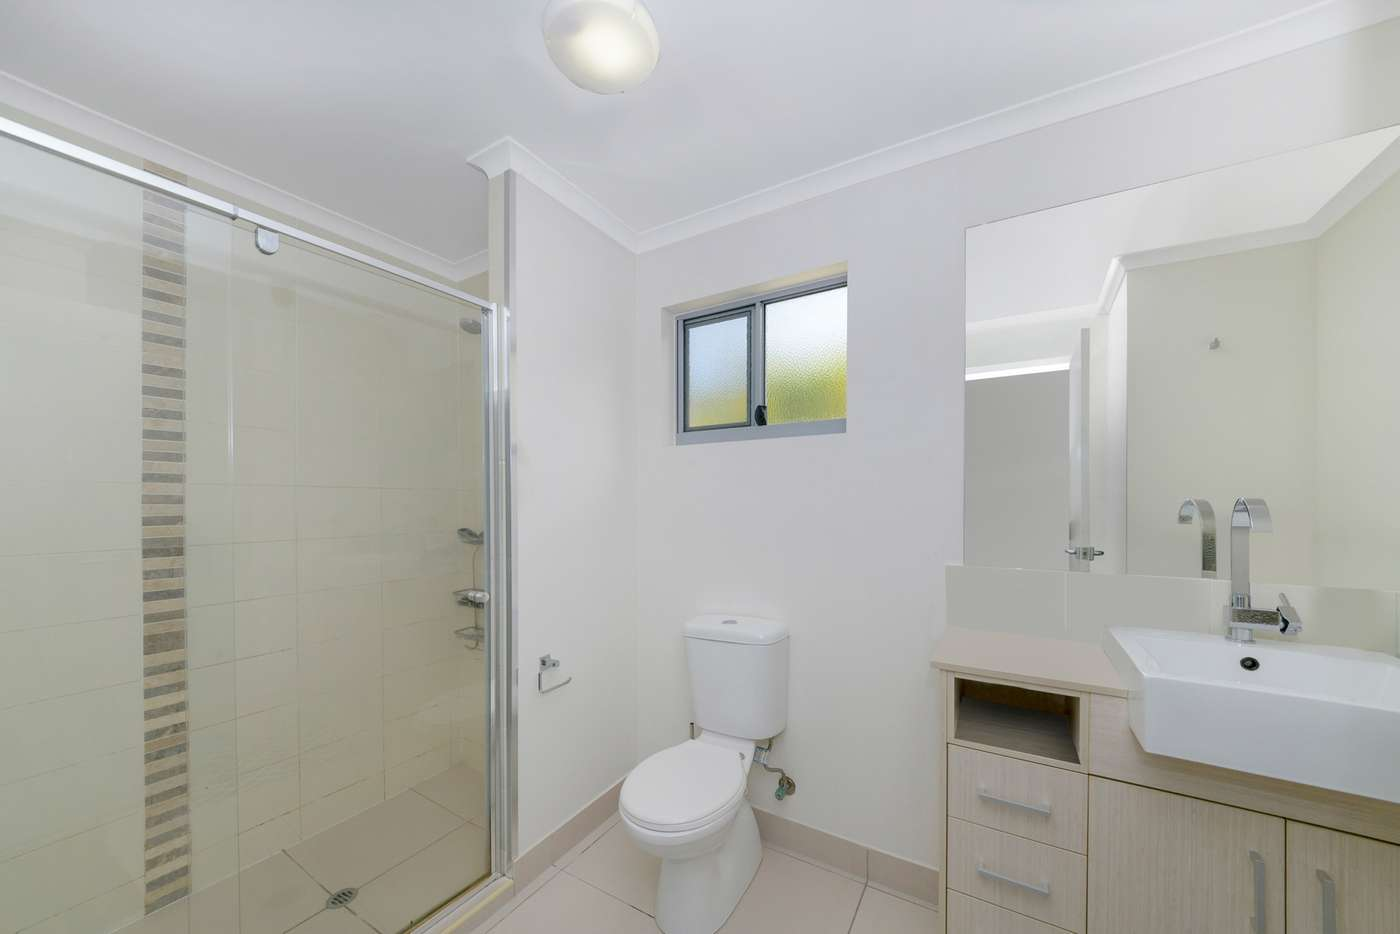 Sixth view of Homely apartment listing, 73/28 Landsborough street, North Ward QLD 4810